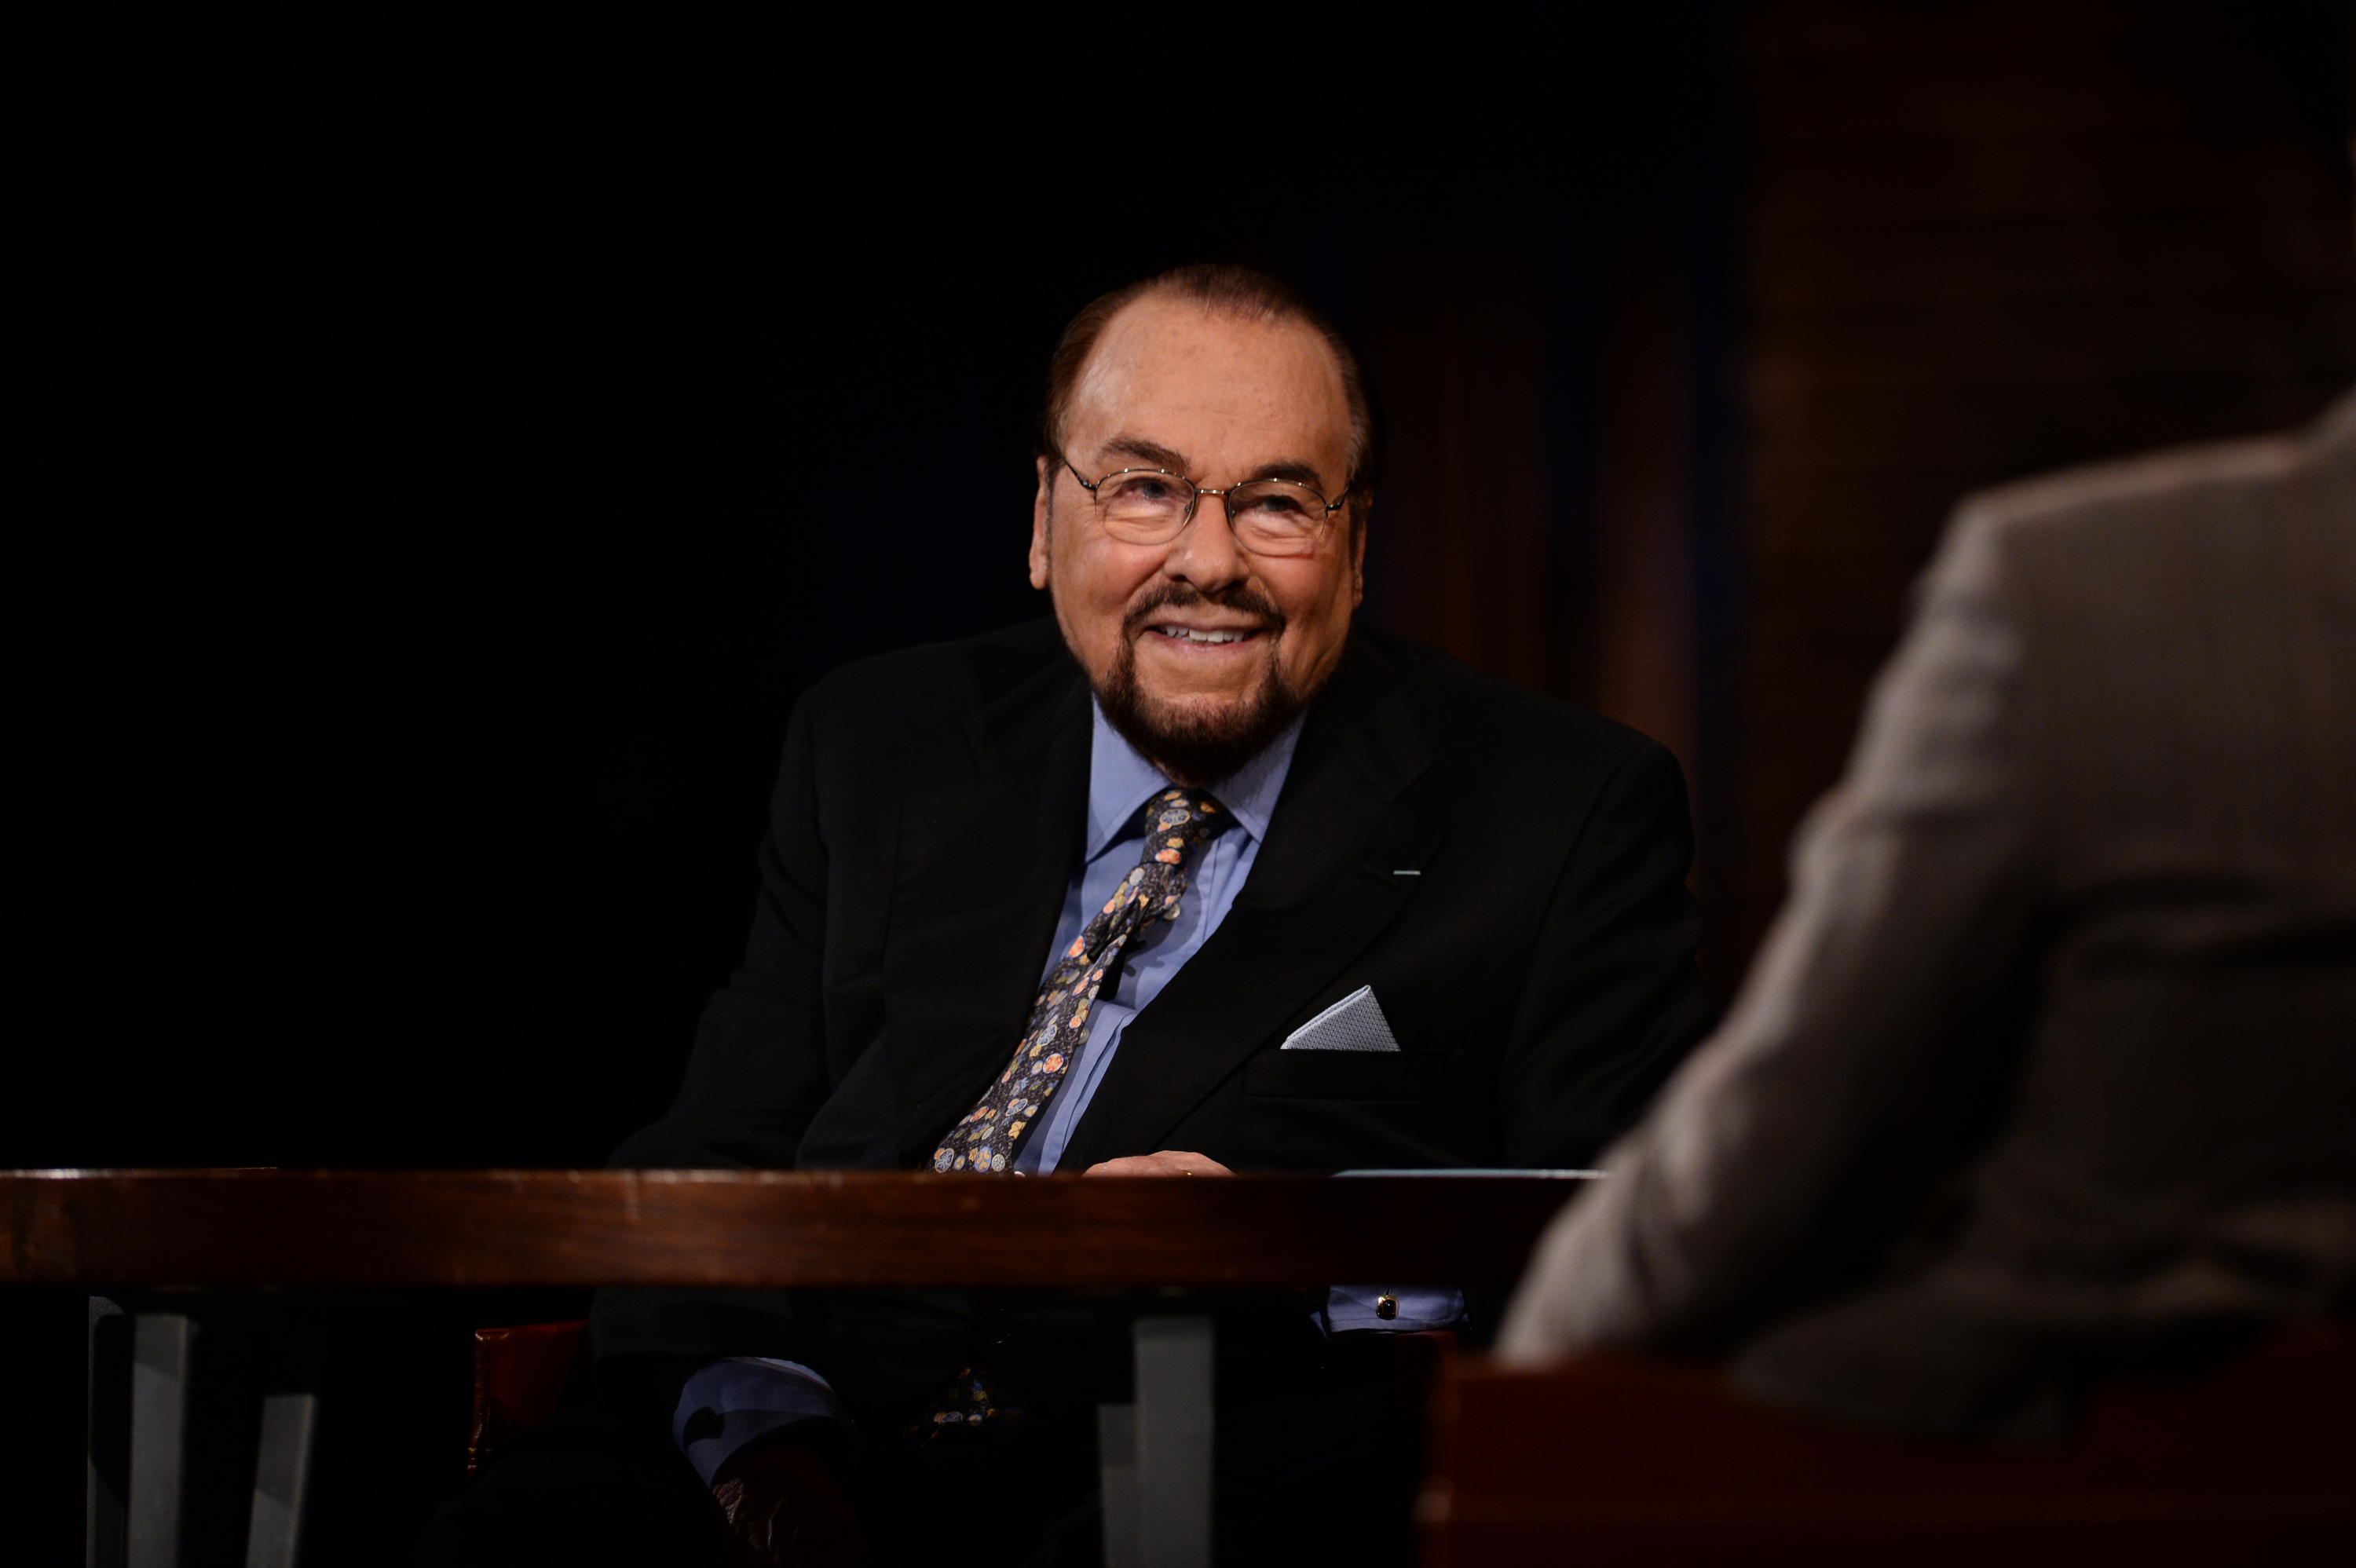 James Lipton sitting at a table smiling. He has a goatee, and is wearing a black suite and blue/pink patterned tie.